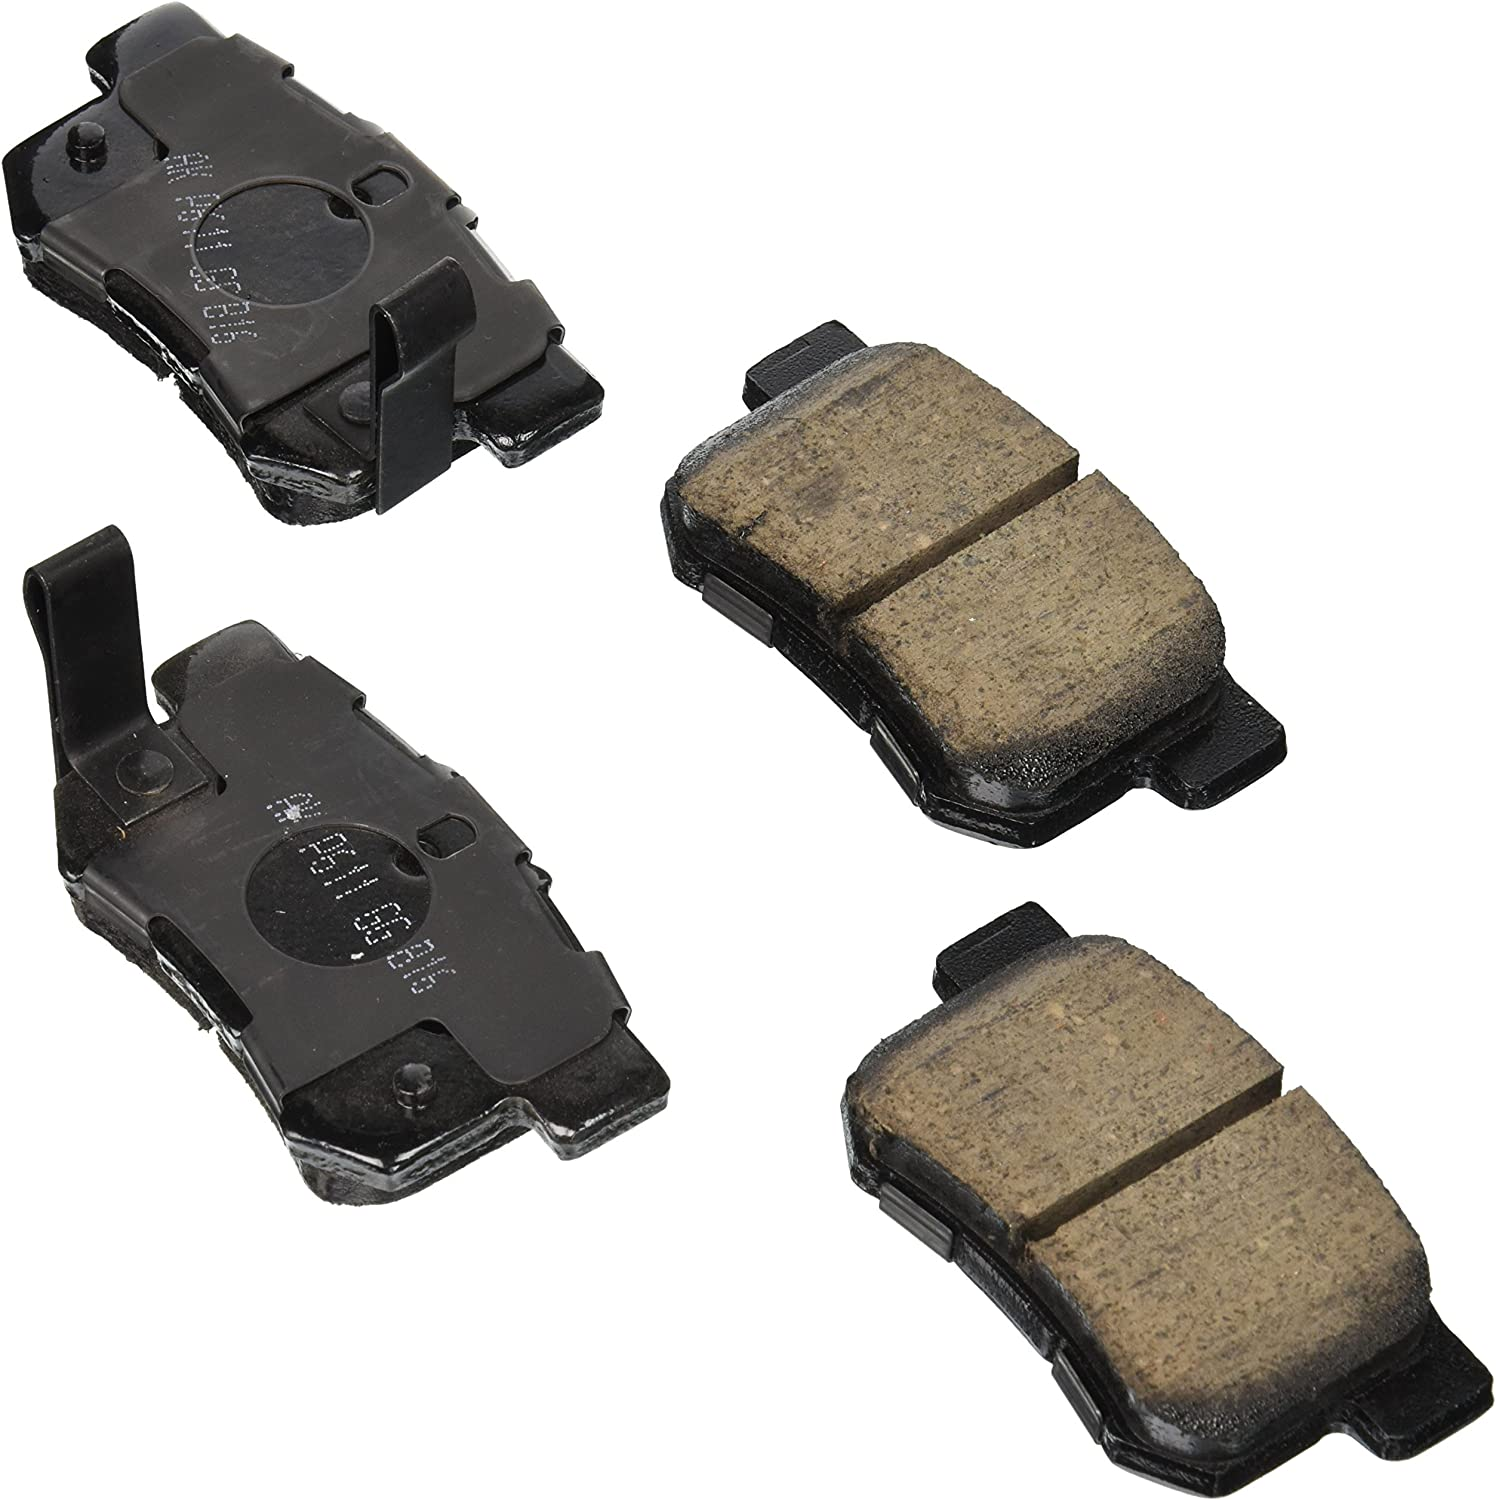 Cavalier 1982-2005 Red Hound Auto 2 Clutch or Brake Pedal Pads Covers Compatible with Chevrolet GMC Buick Skyhawk 1982-1986 Sunbird 1986-1994 and More for Manual Transmission